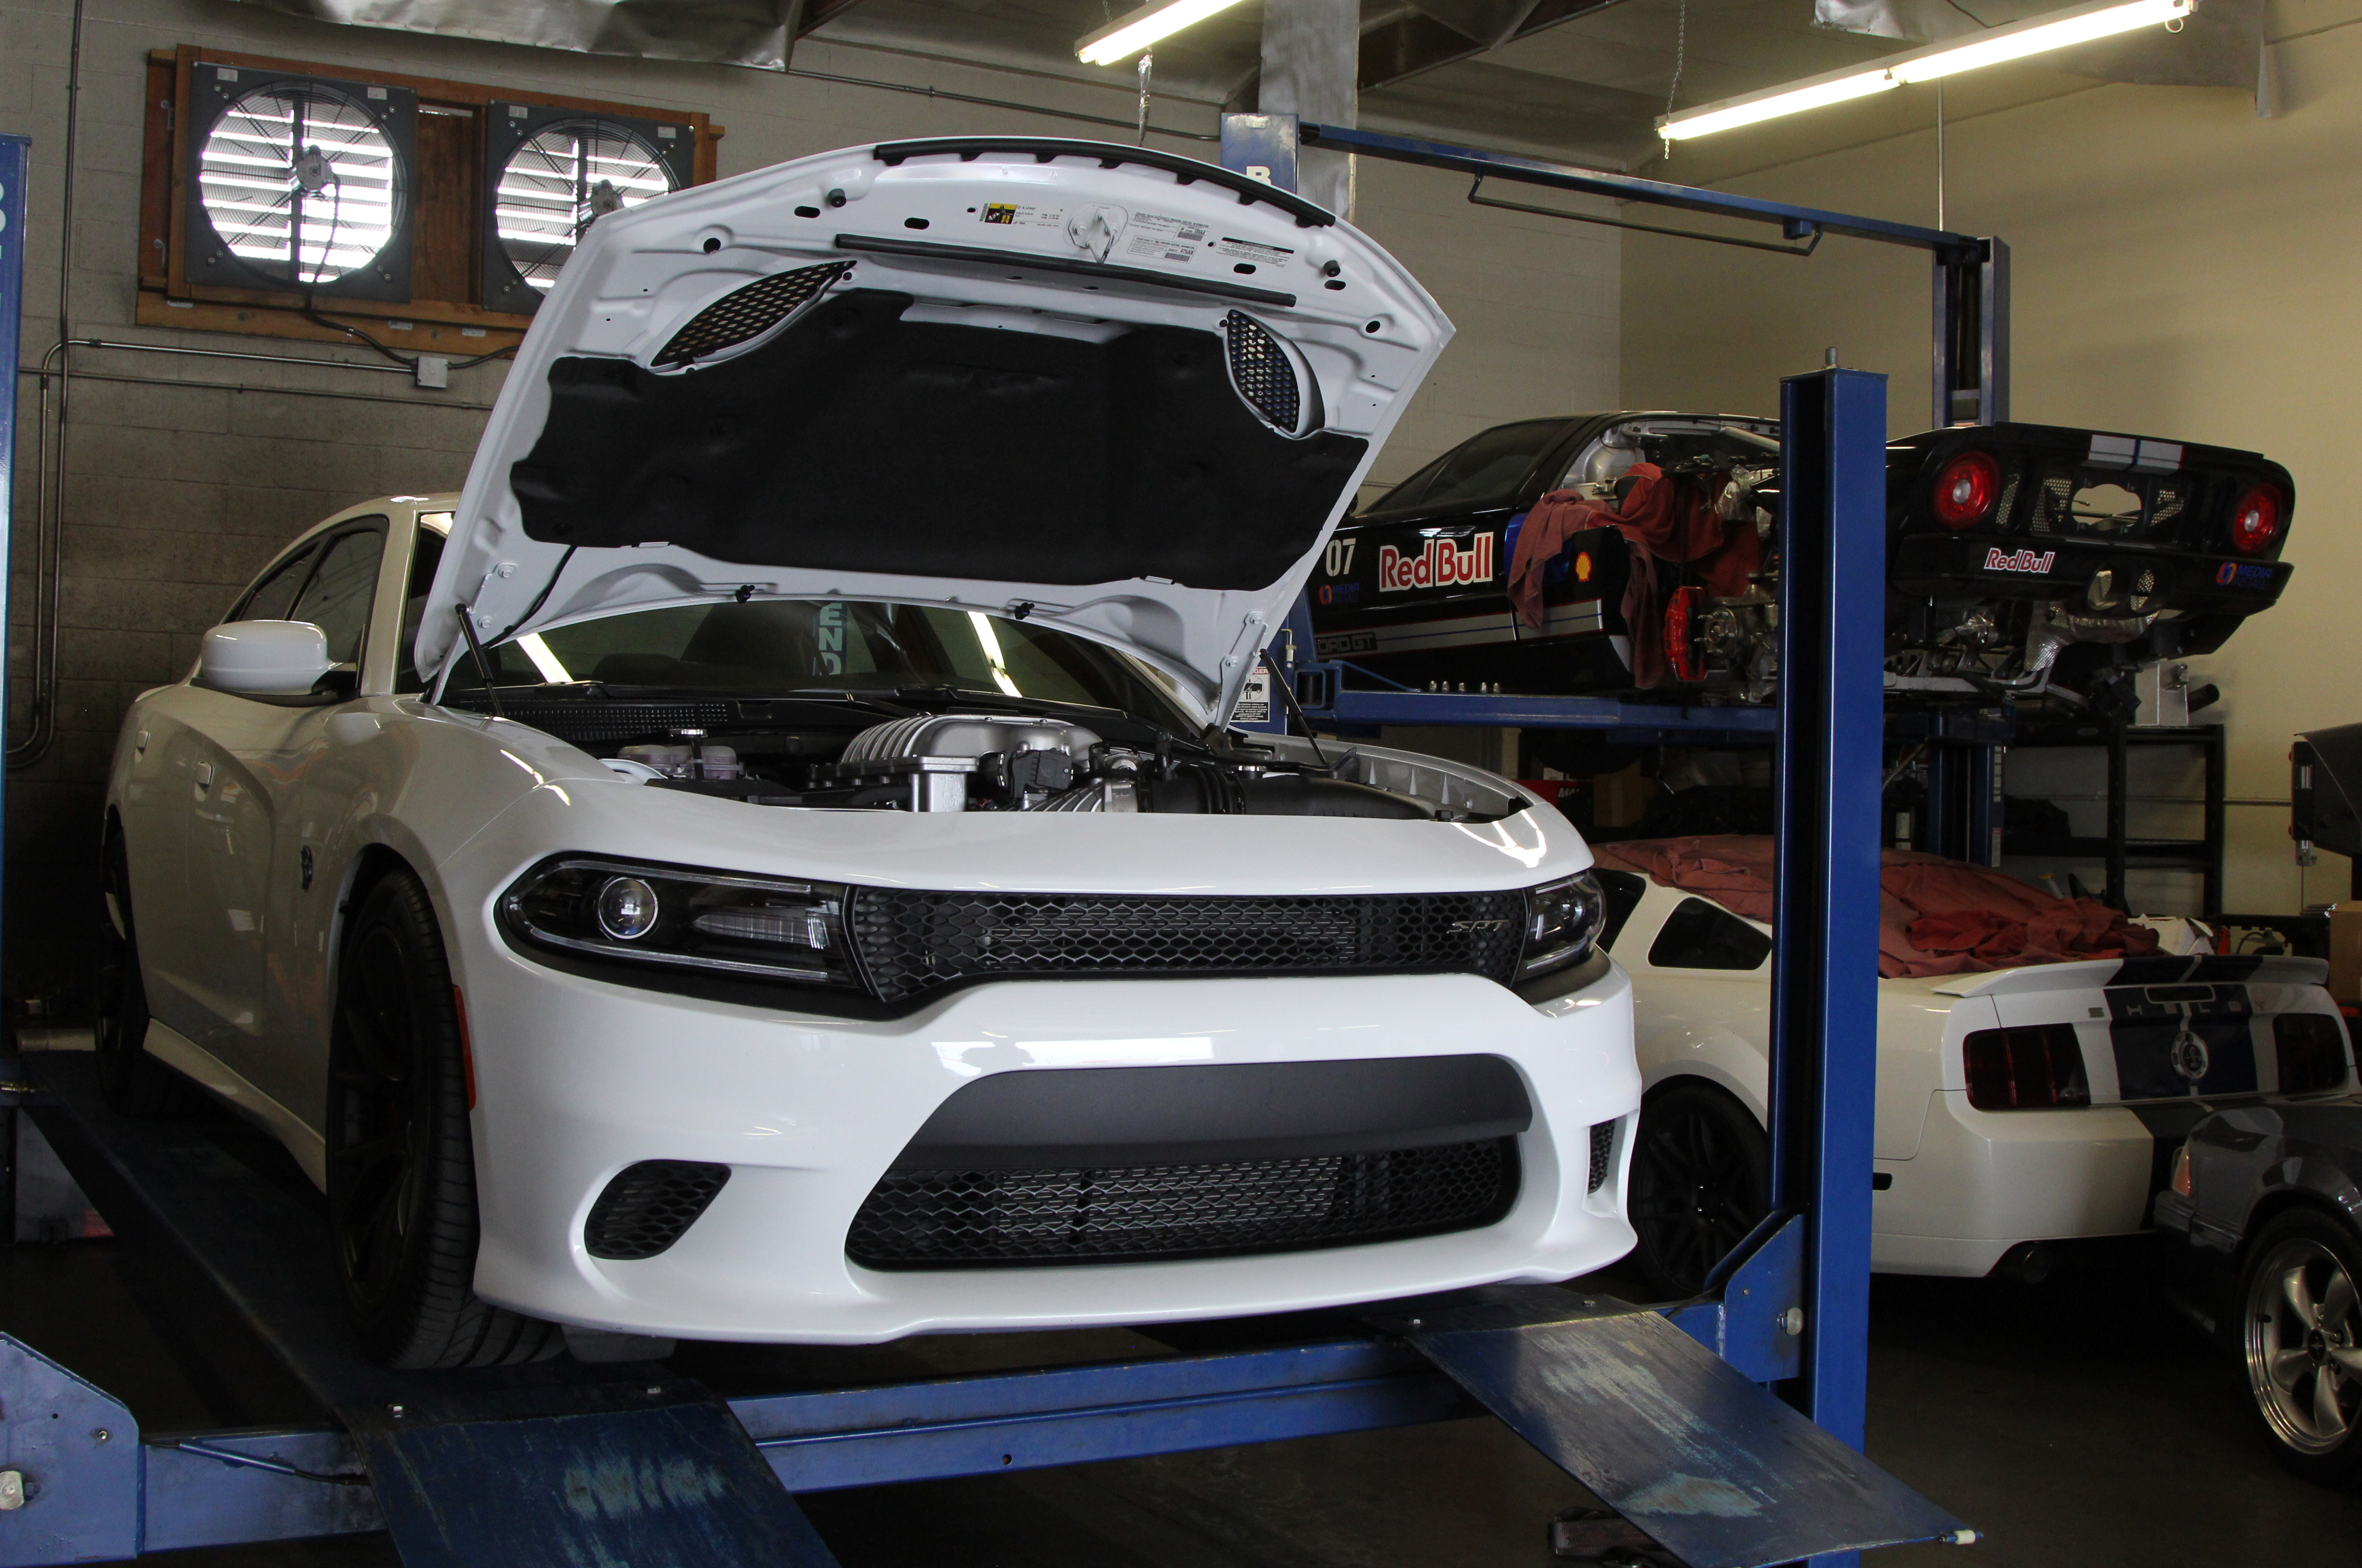 We threw the Charger Hellcat on the rollers at Addiction Motorsports in Canoga Park, California, and saw 583 rwhp (using the SAE correction). That's a little lower than we expected, but it was a good indication of how the hot summer weather would affect the performance.